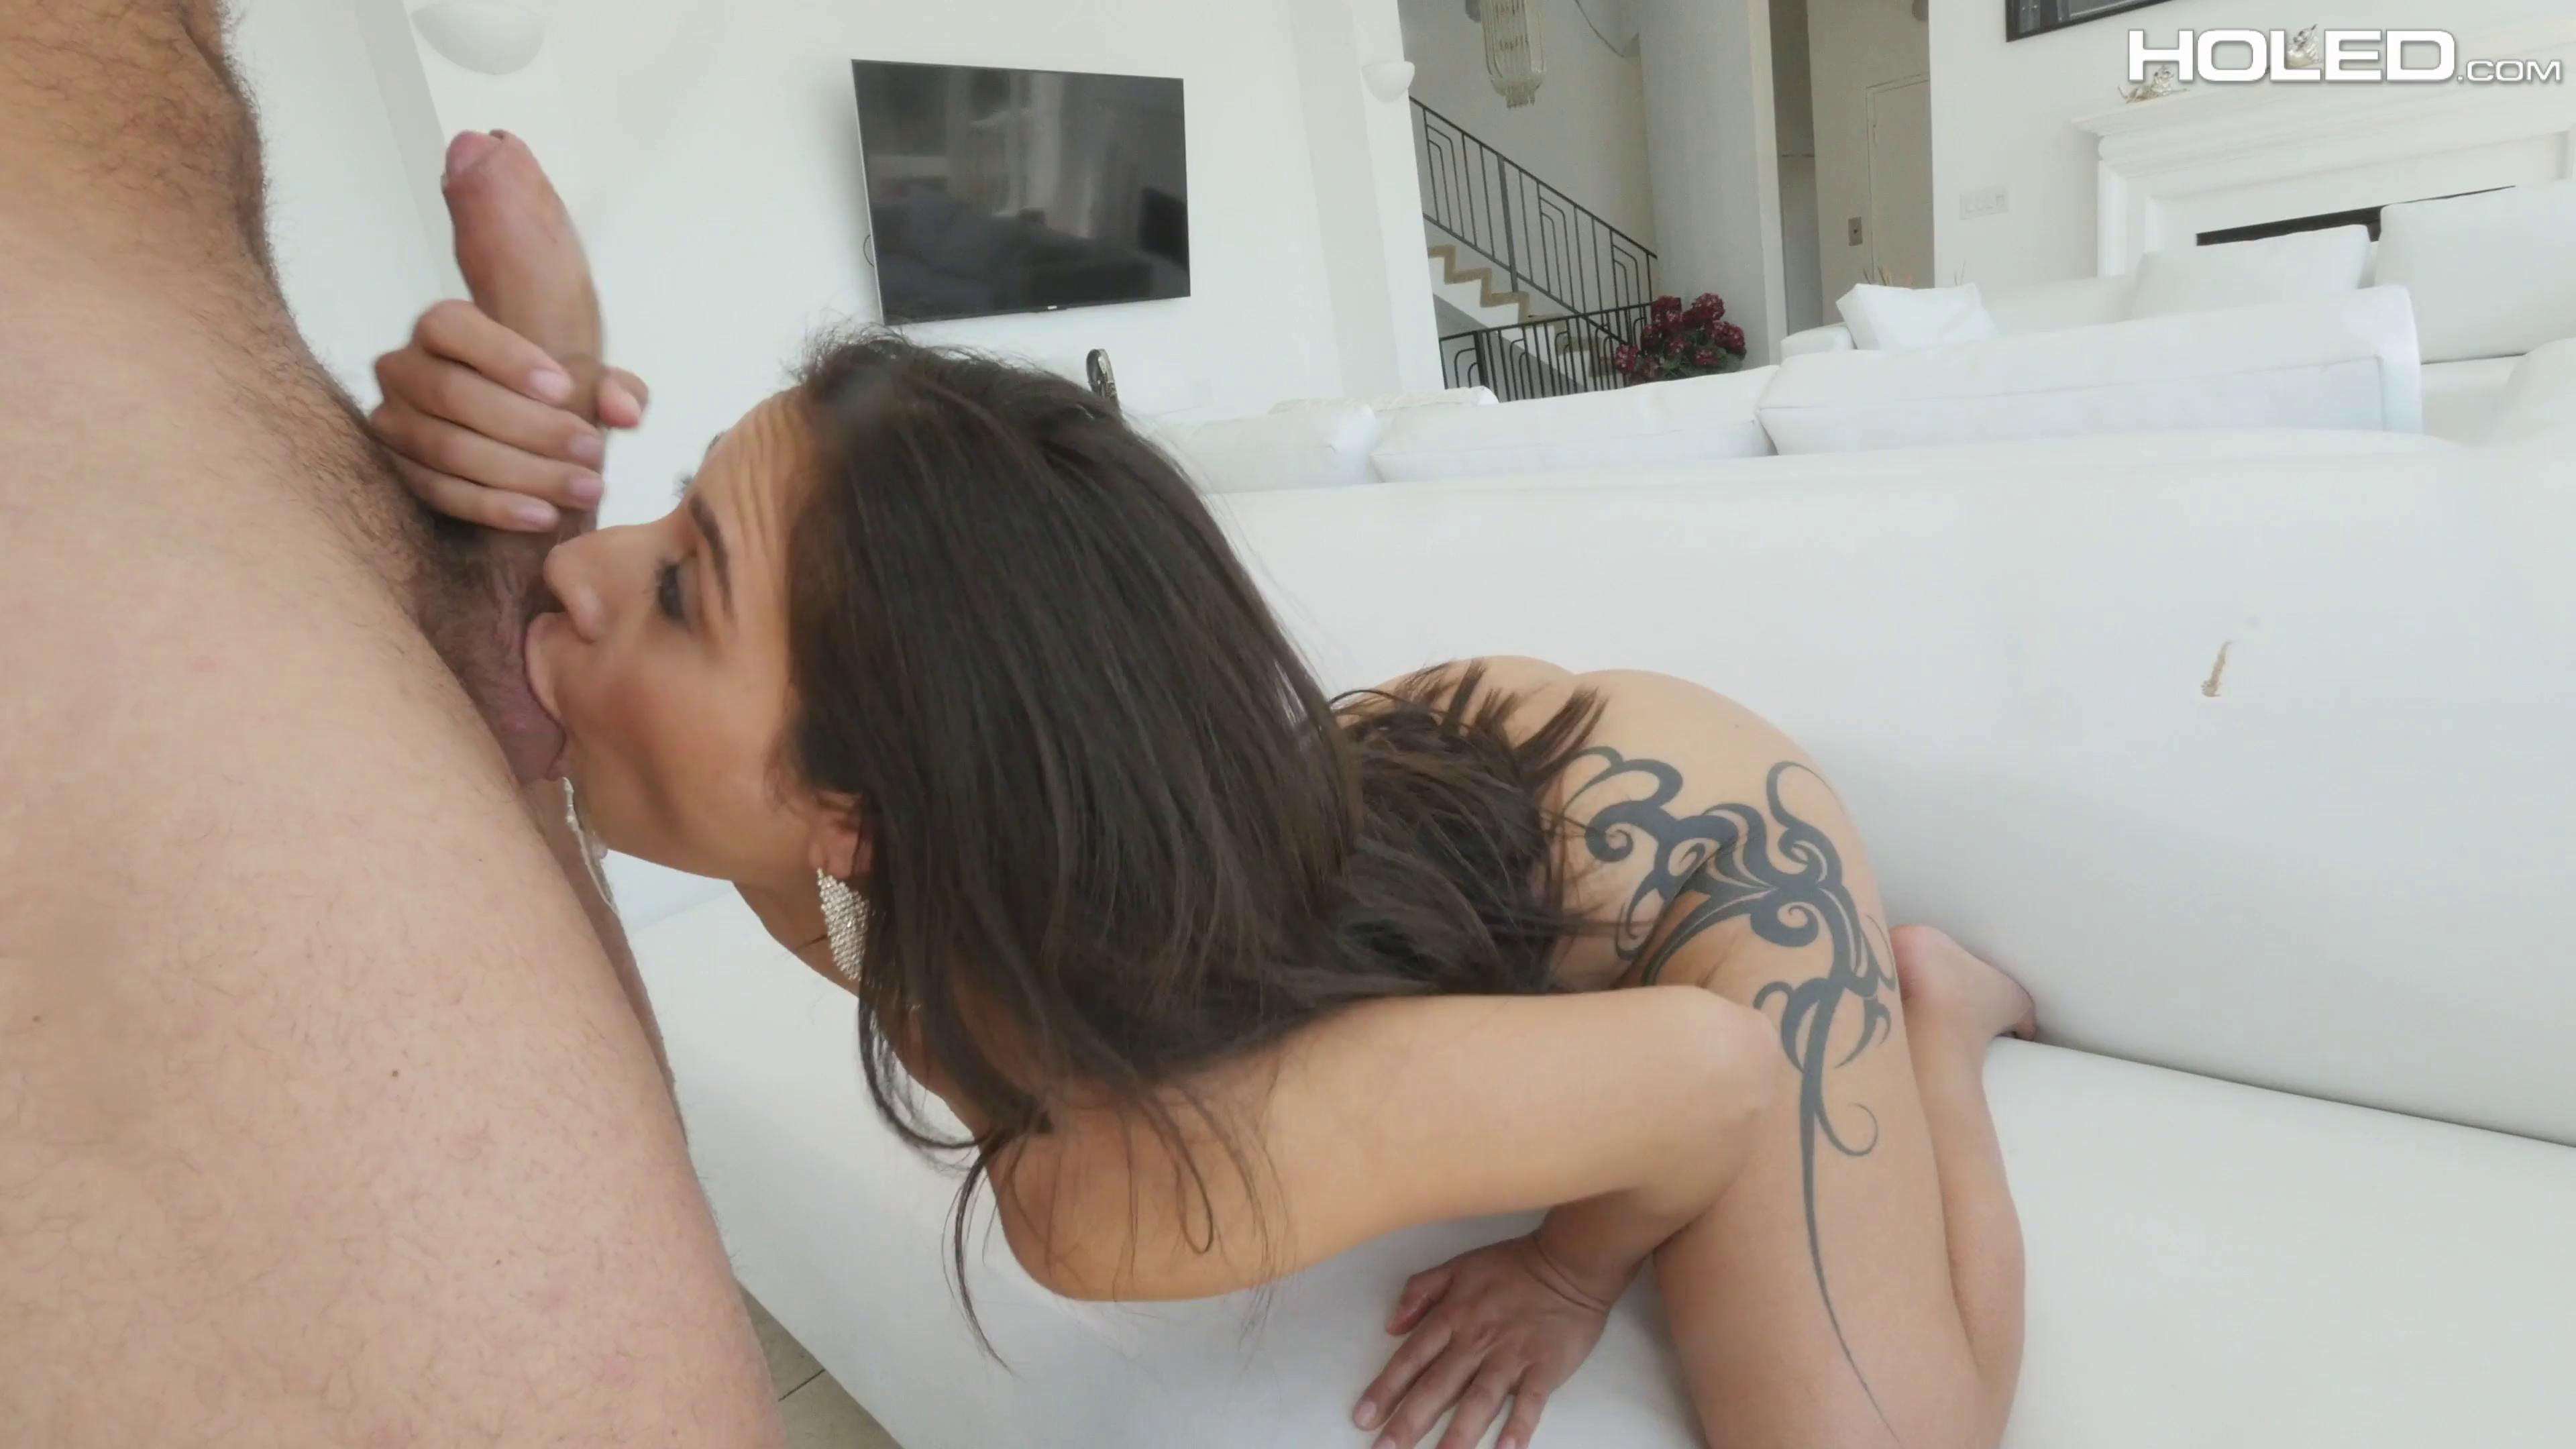 Holed – Jynx Maze Creampied On The 4th Of July